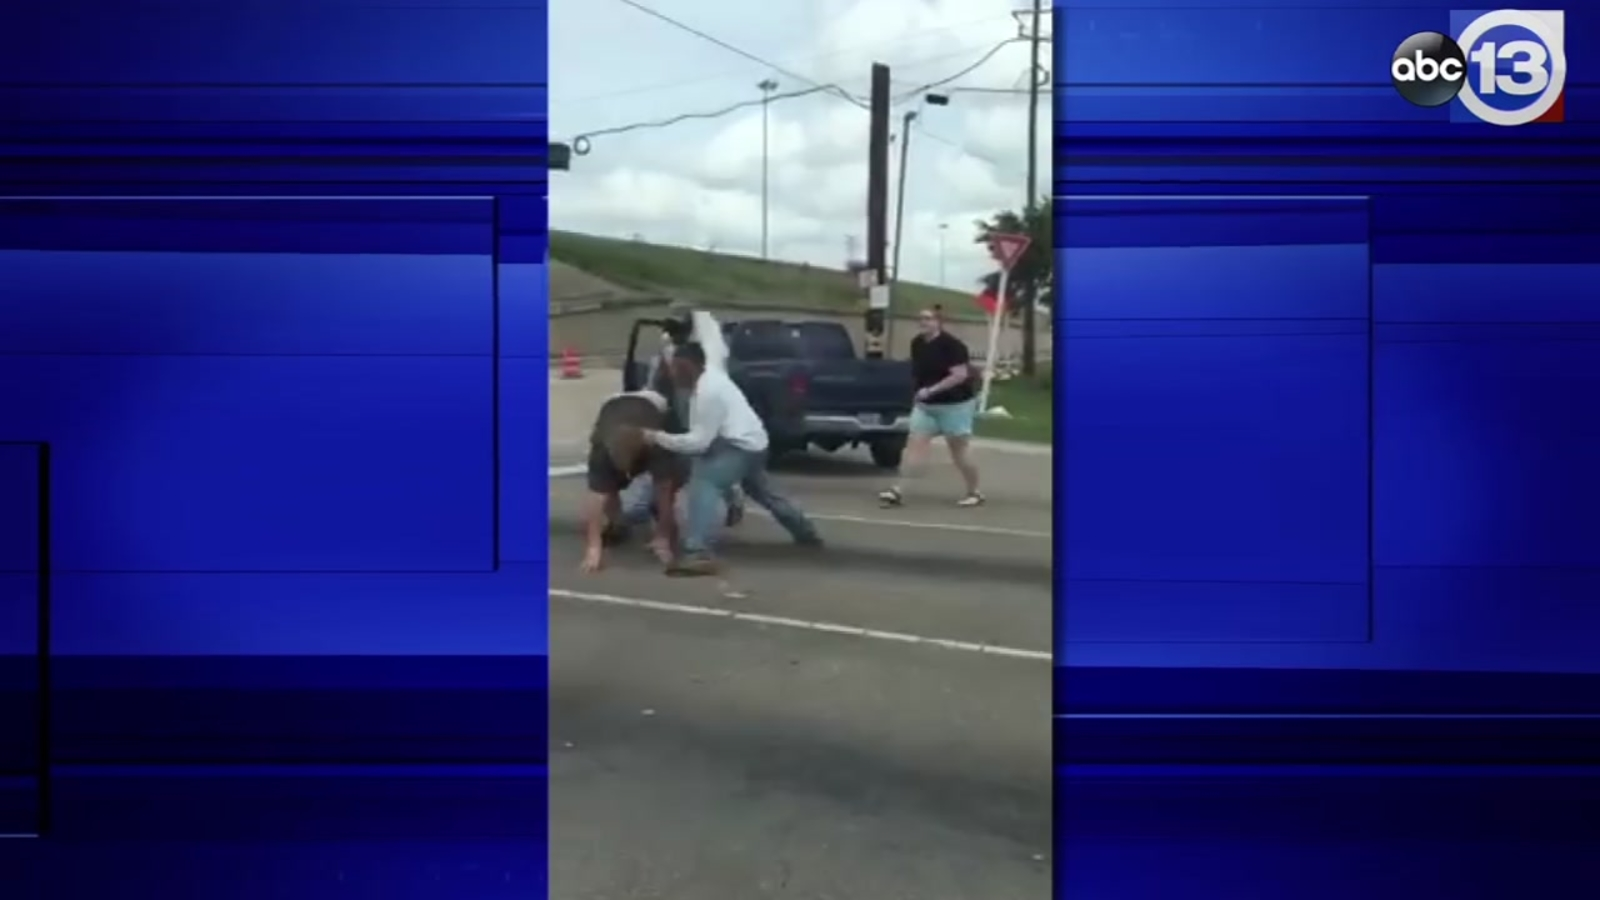 EXCLUSIVE: Heated road rage incident captured on camera in NW